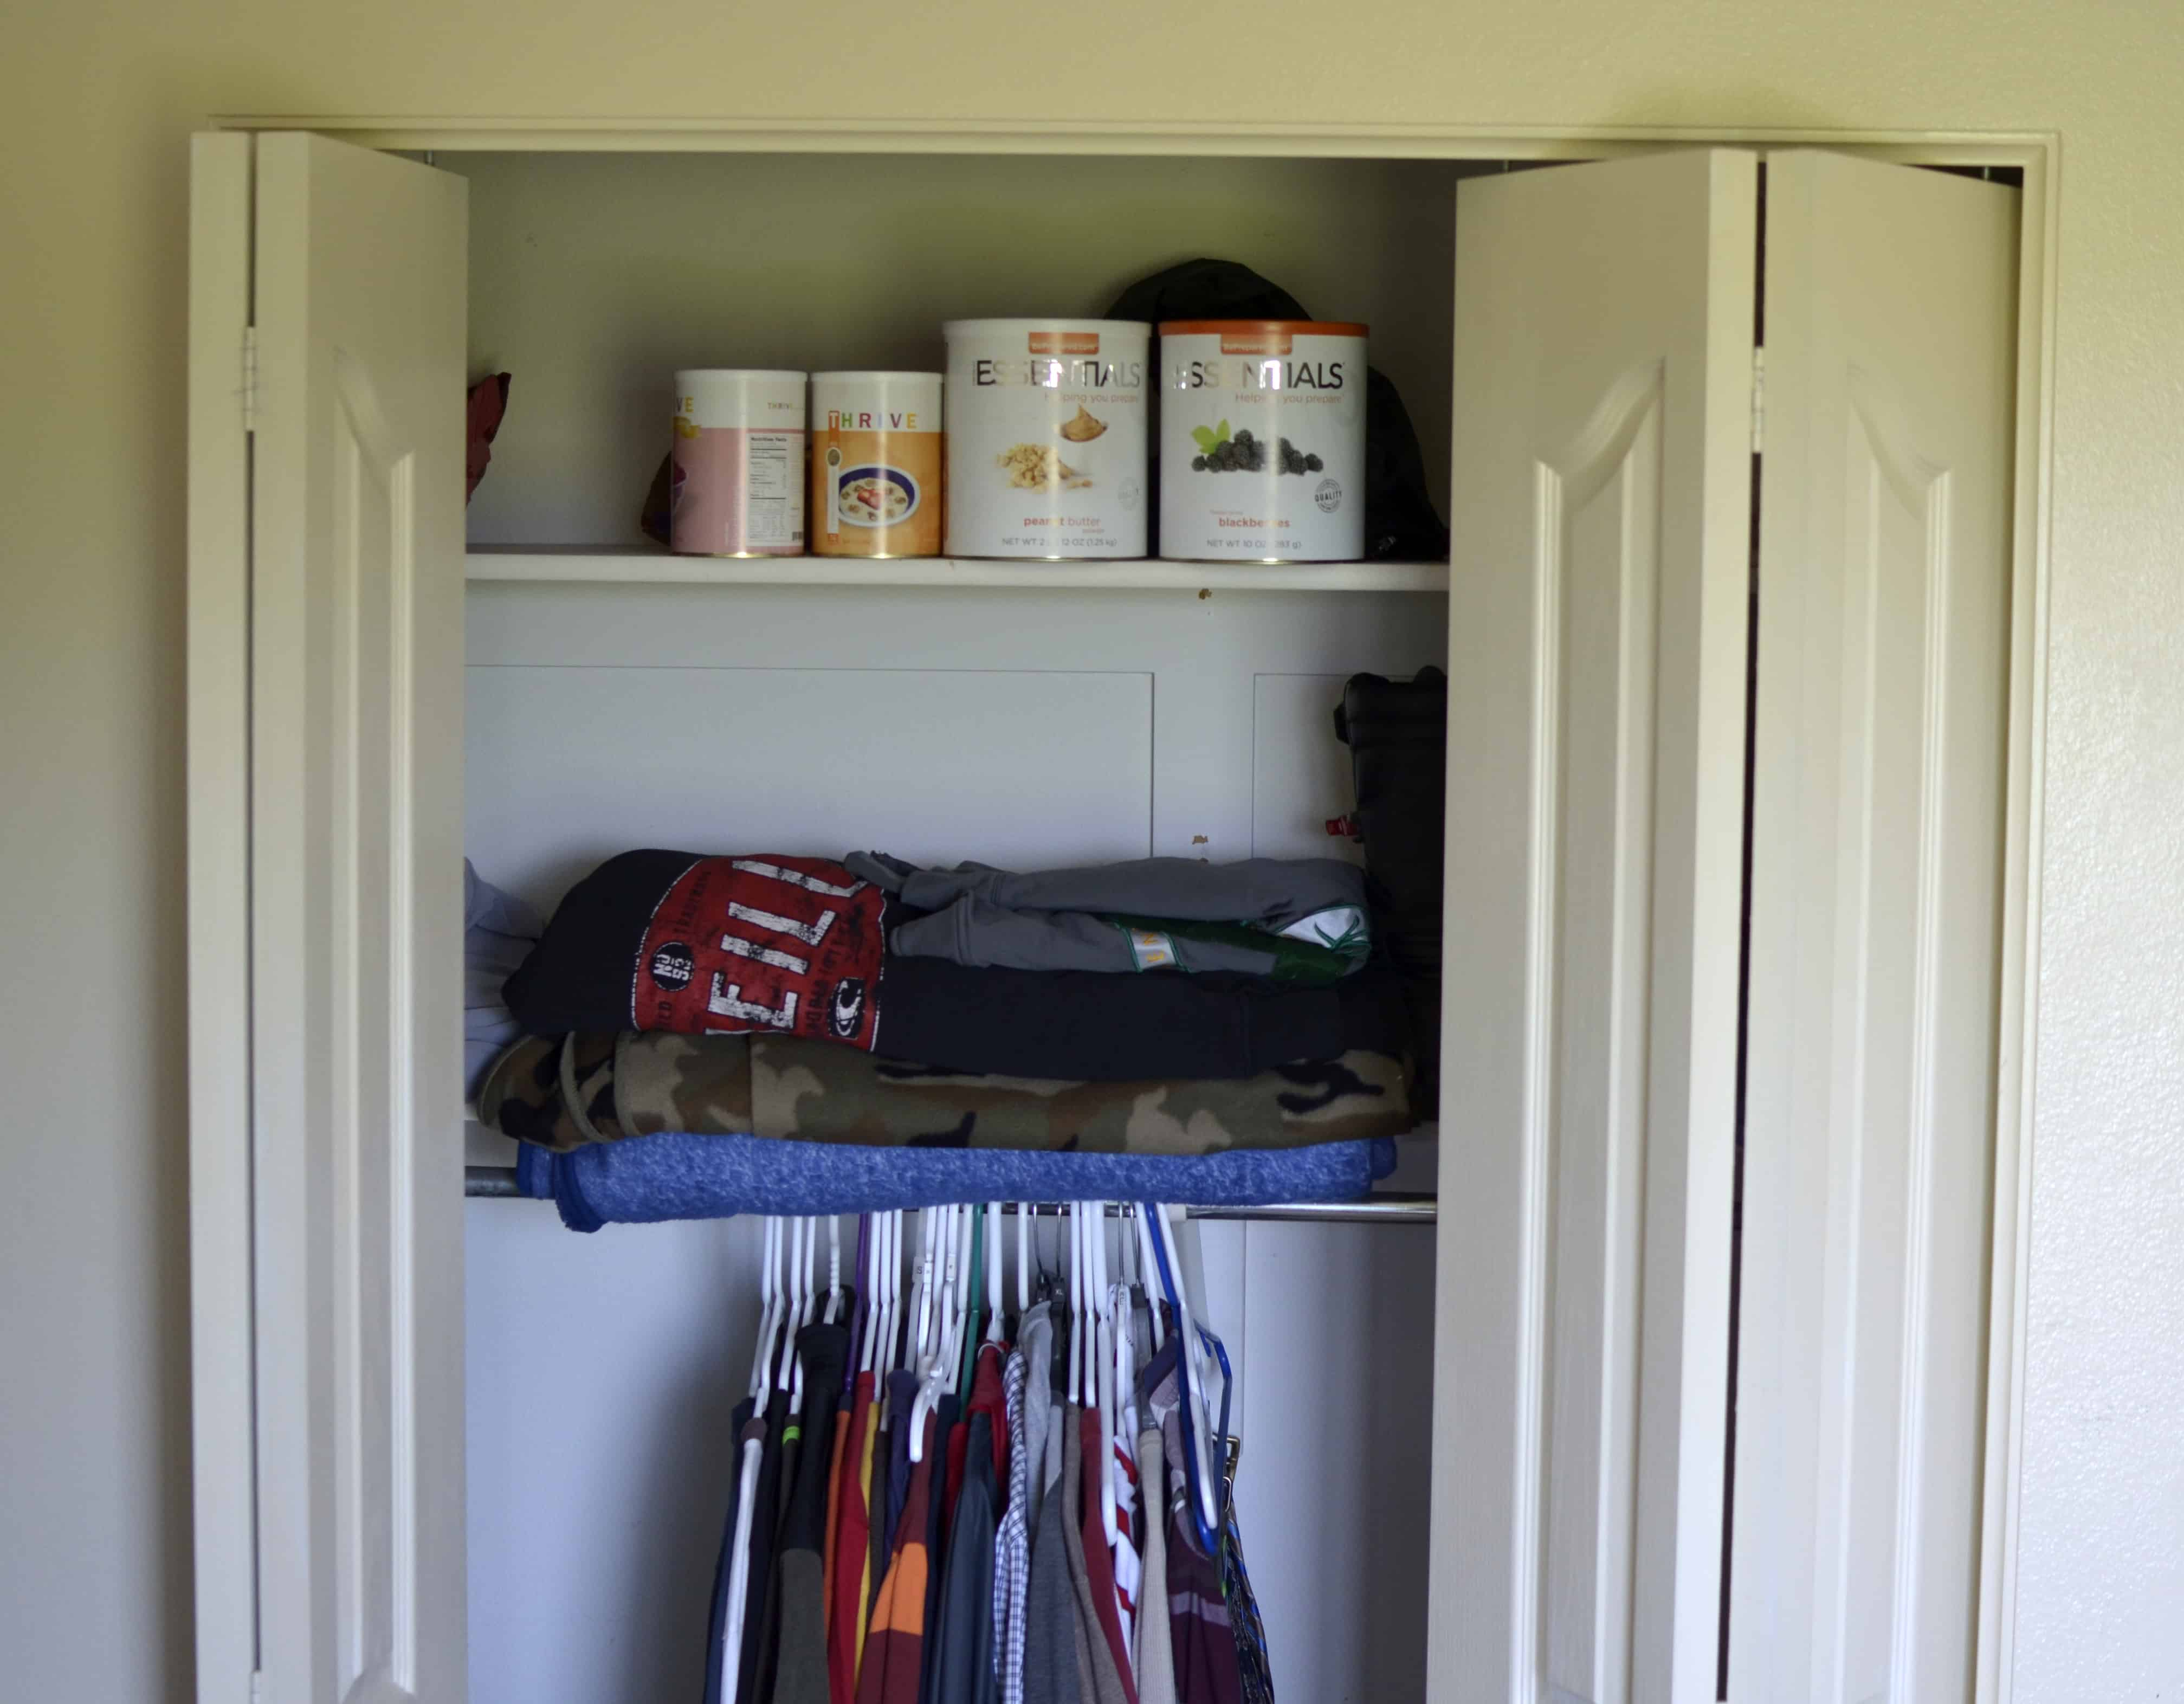 5 New Ideas For Storing Food In Small Places The